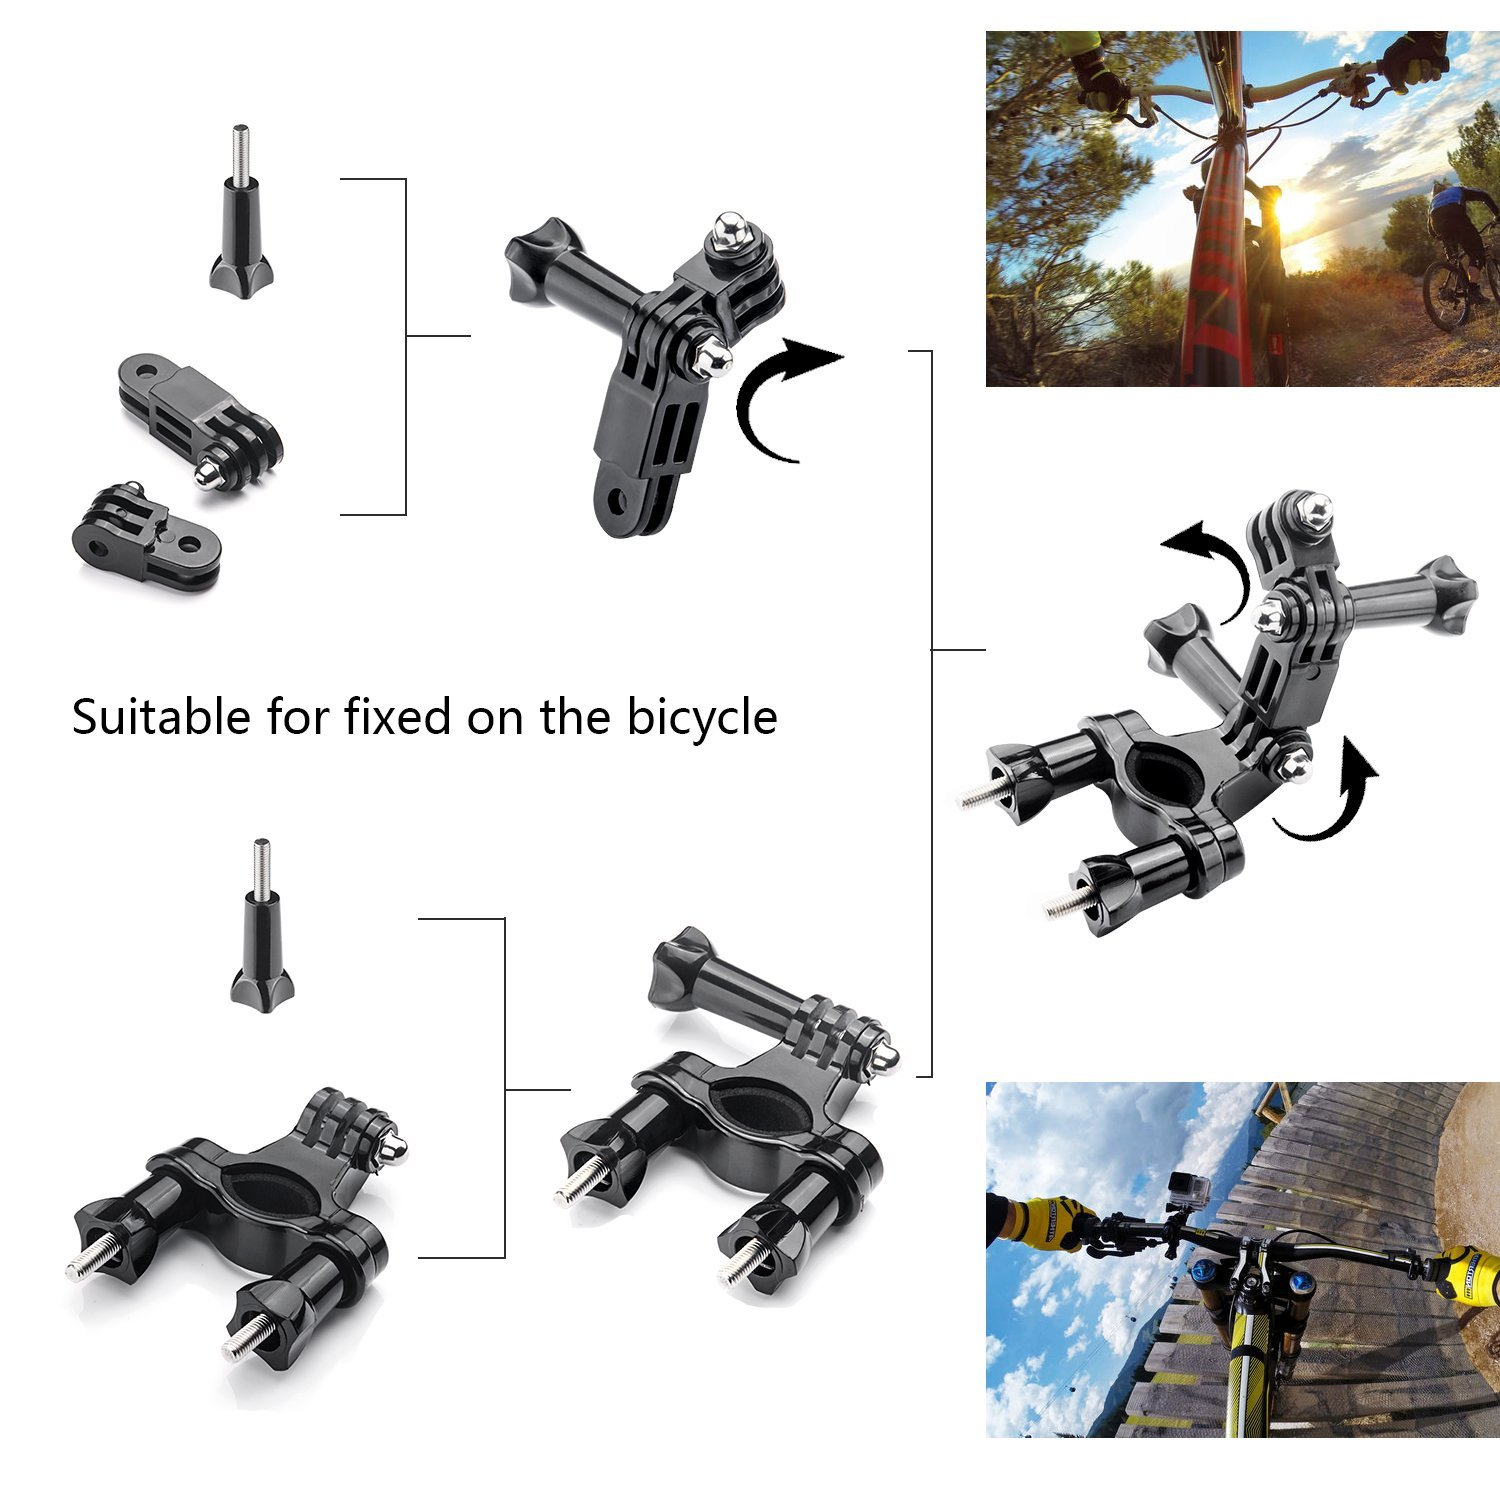 Gopro Accessories Set Helmet Harness Chest Belt Head Mount Strap Monopod For Go pro Hero 4 3+2 xiaomi yi action camera GS02